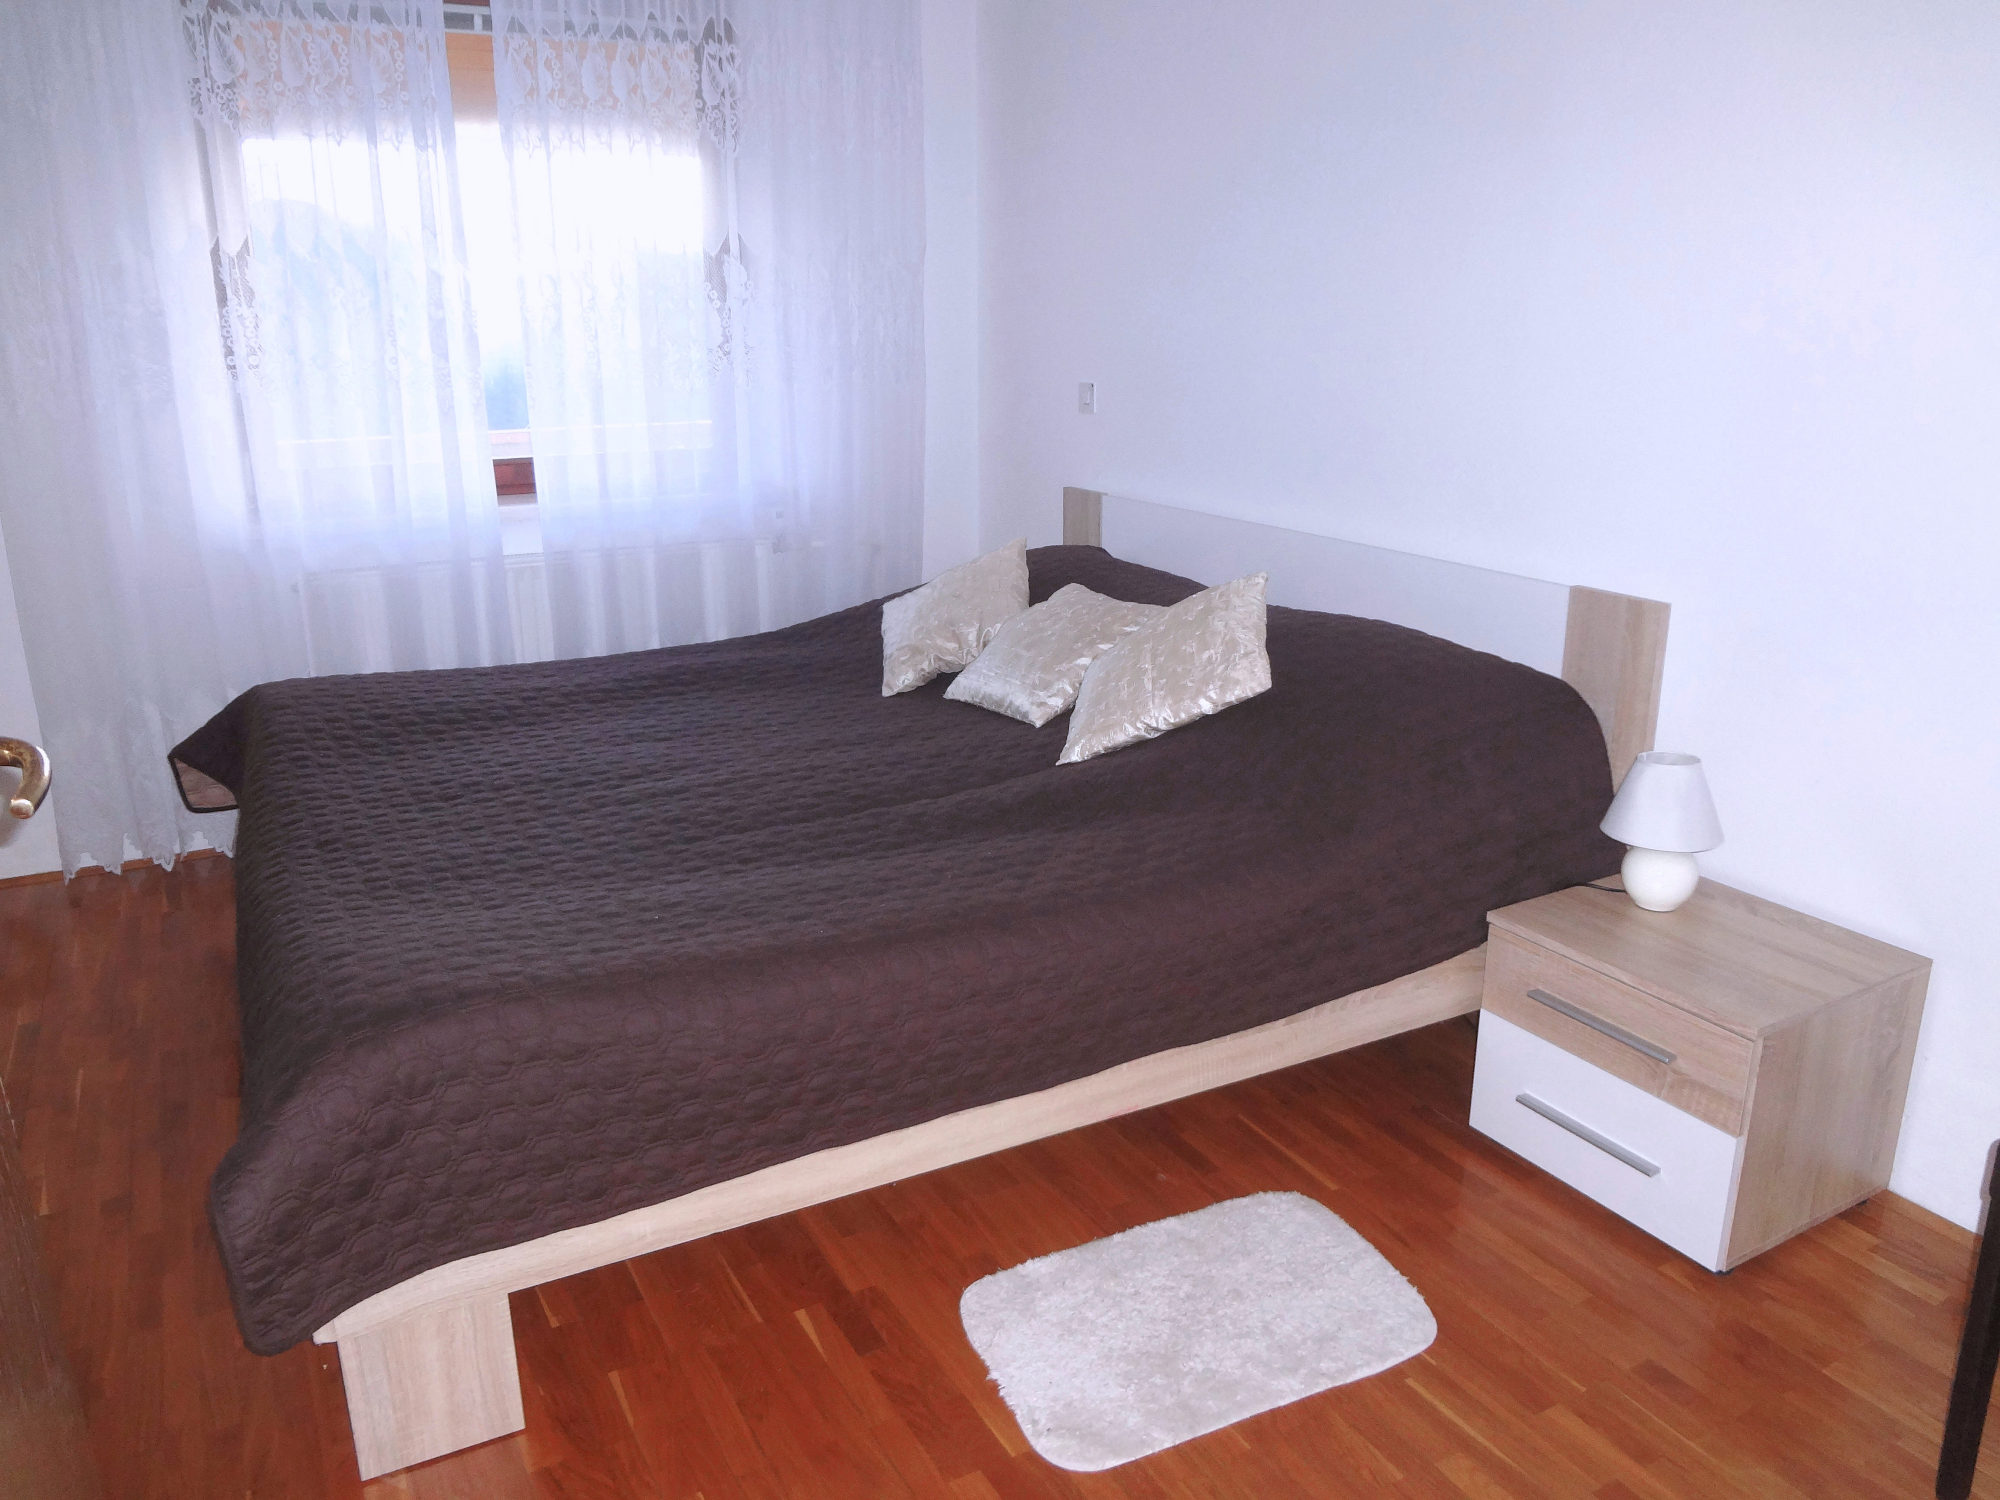 A king size double bed in the bedroom of Apartments Fine Stay in the Bled area of Slovenia